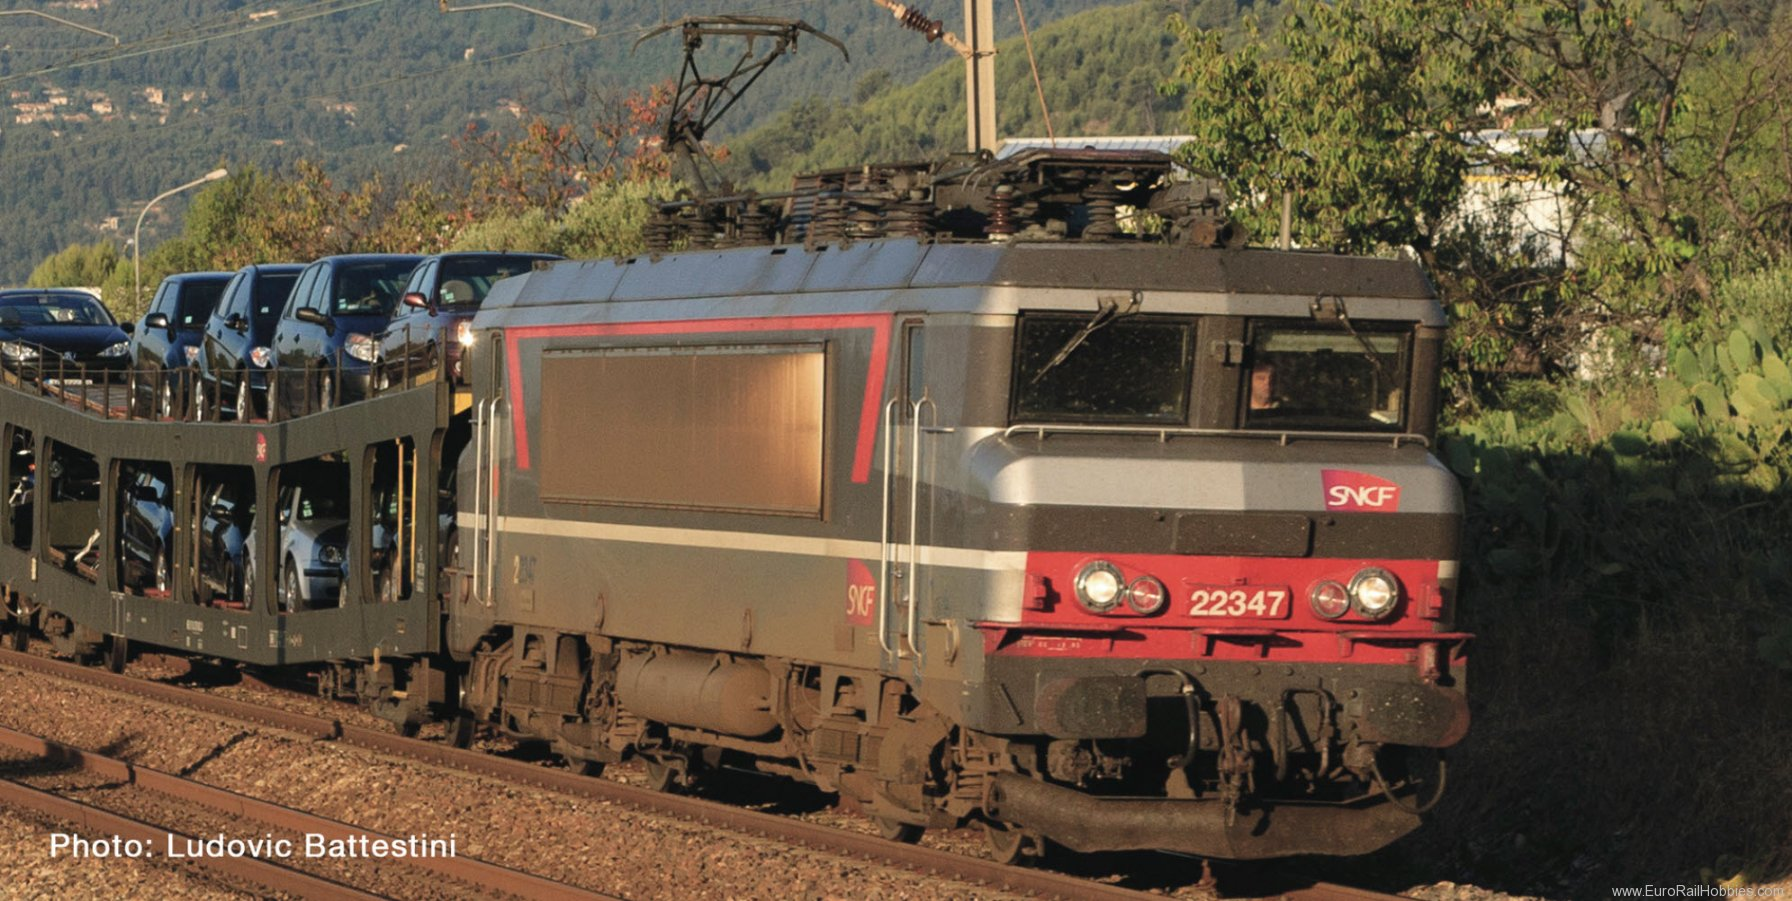 Roco 79882 Roco SNCF Electric locomotive BB22200 Multise